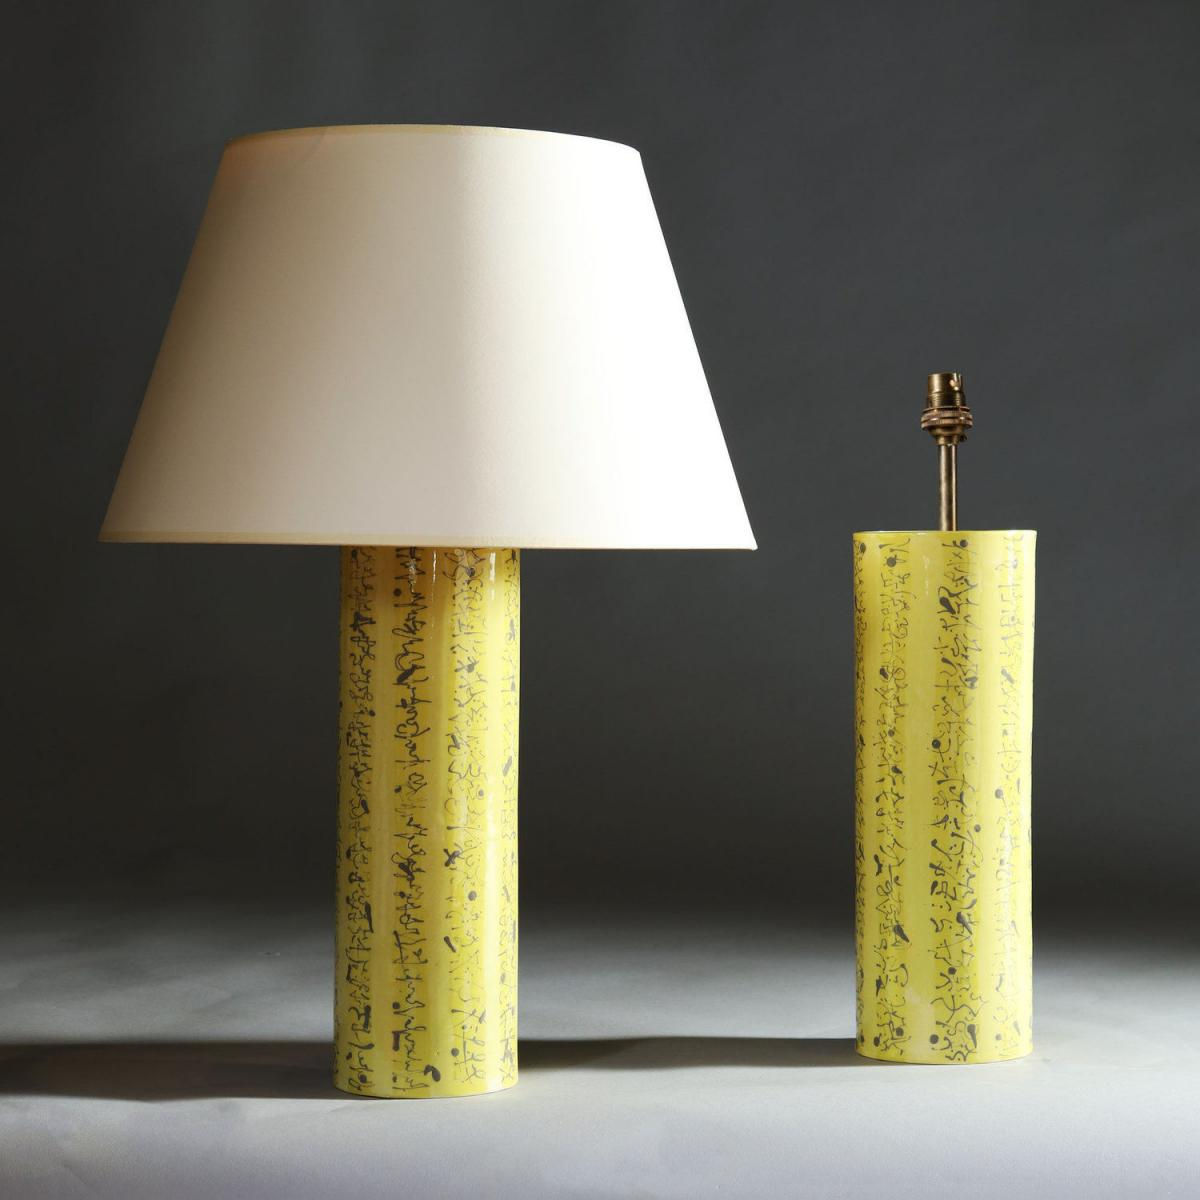 A Pair of Yellow Art Pottery Vases